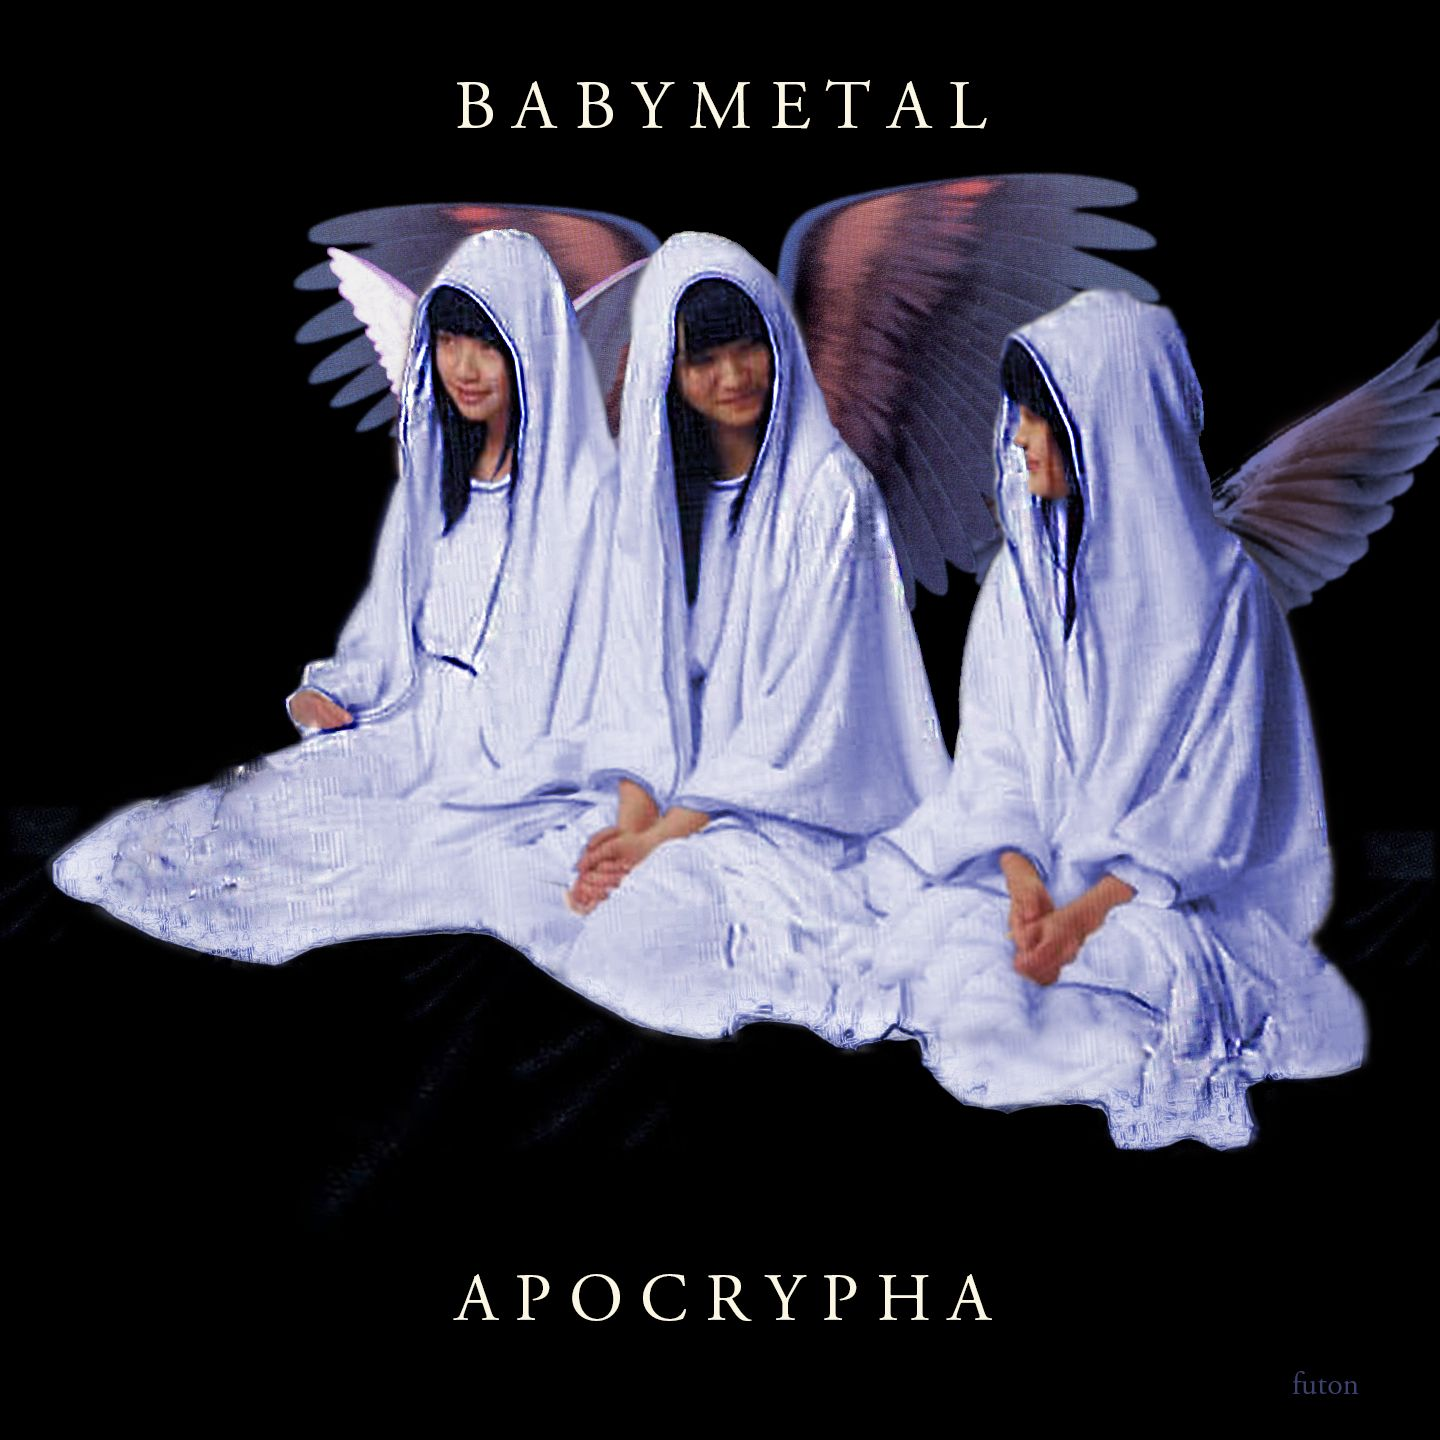 BMHeaven-And-Hell-apocrypha.jpg (1440×1440)